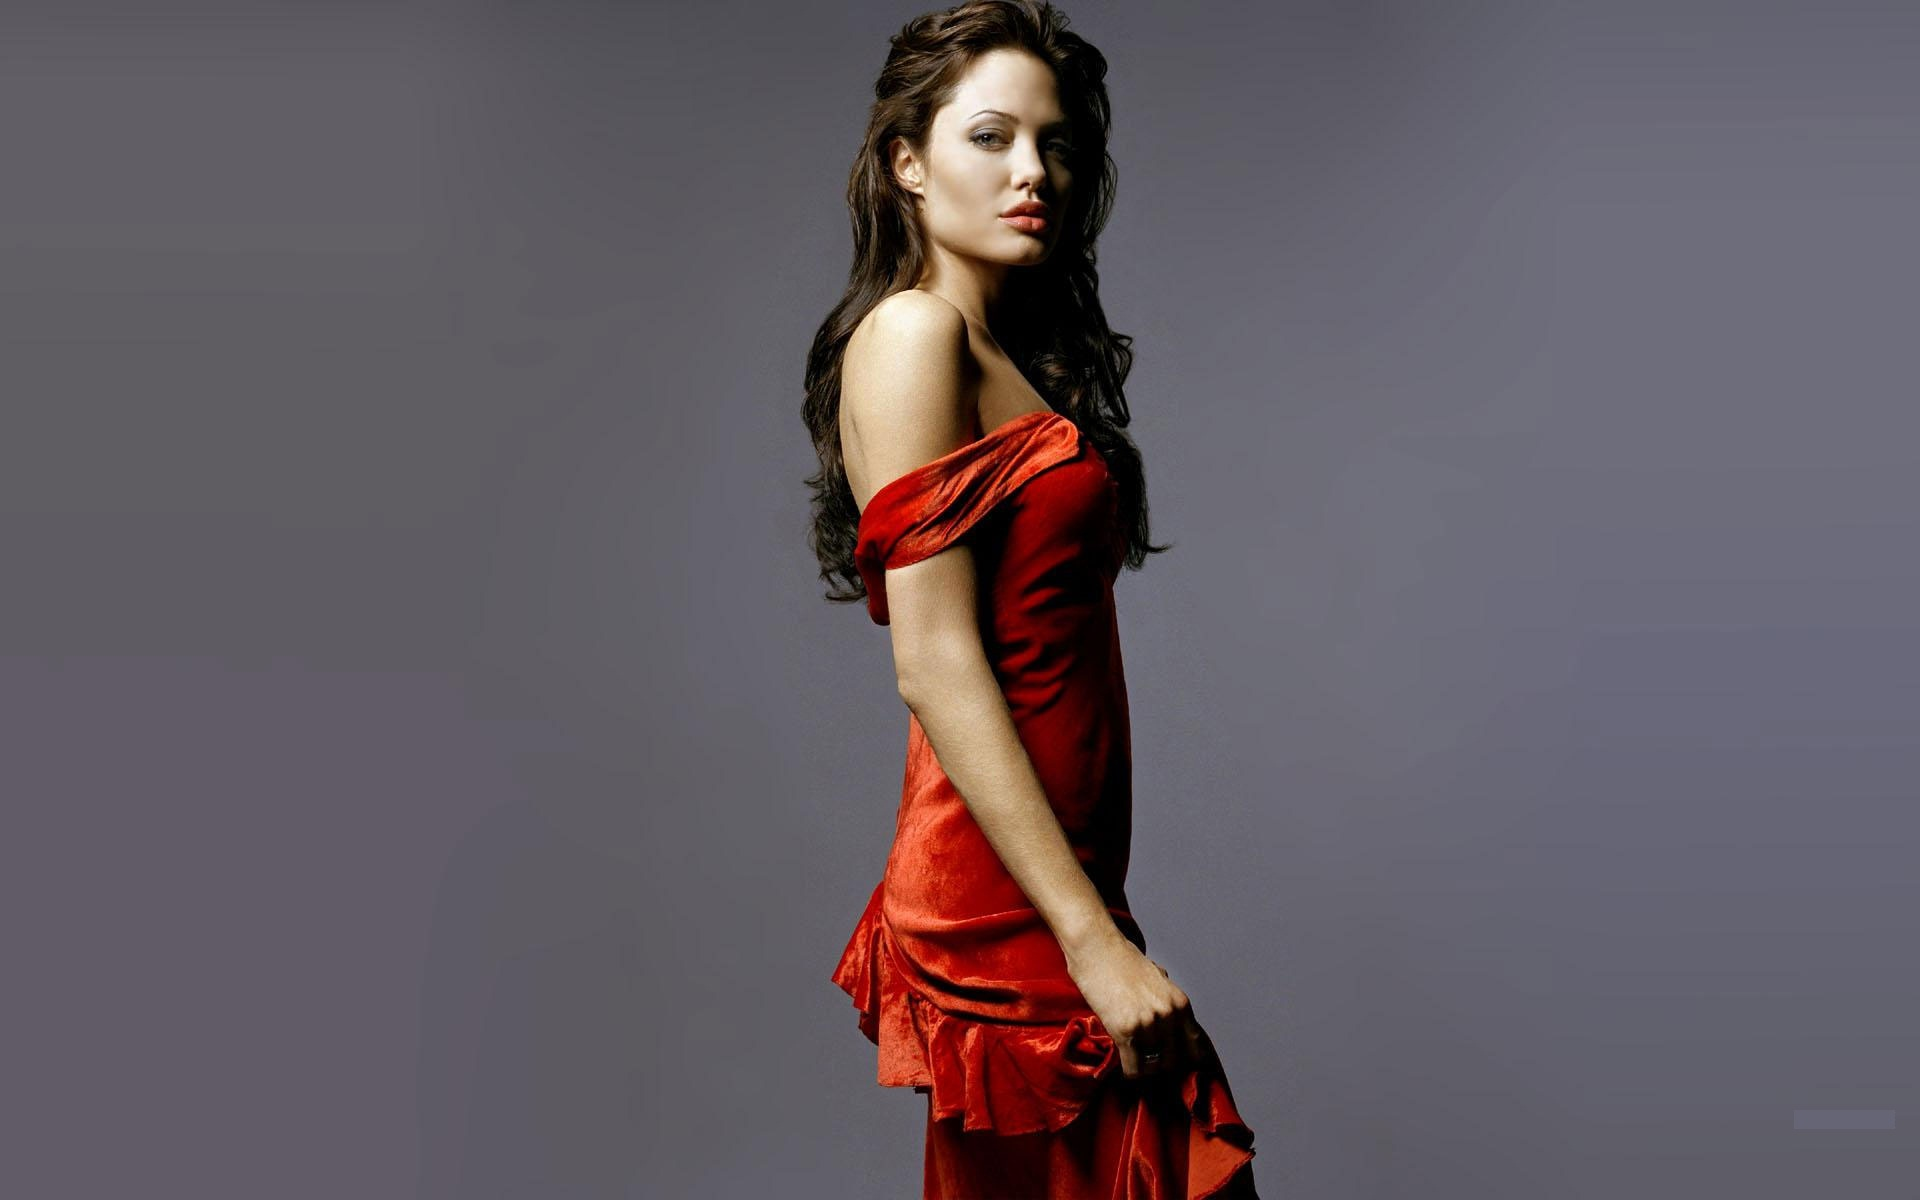 Angelina jolie red dress photos